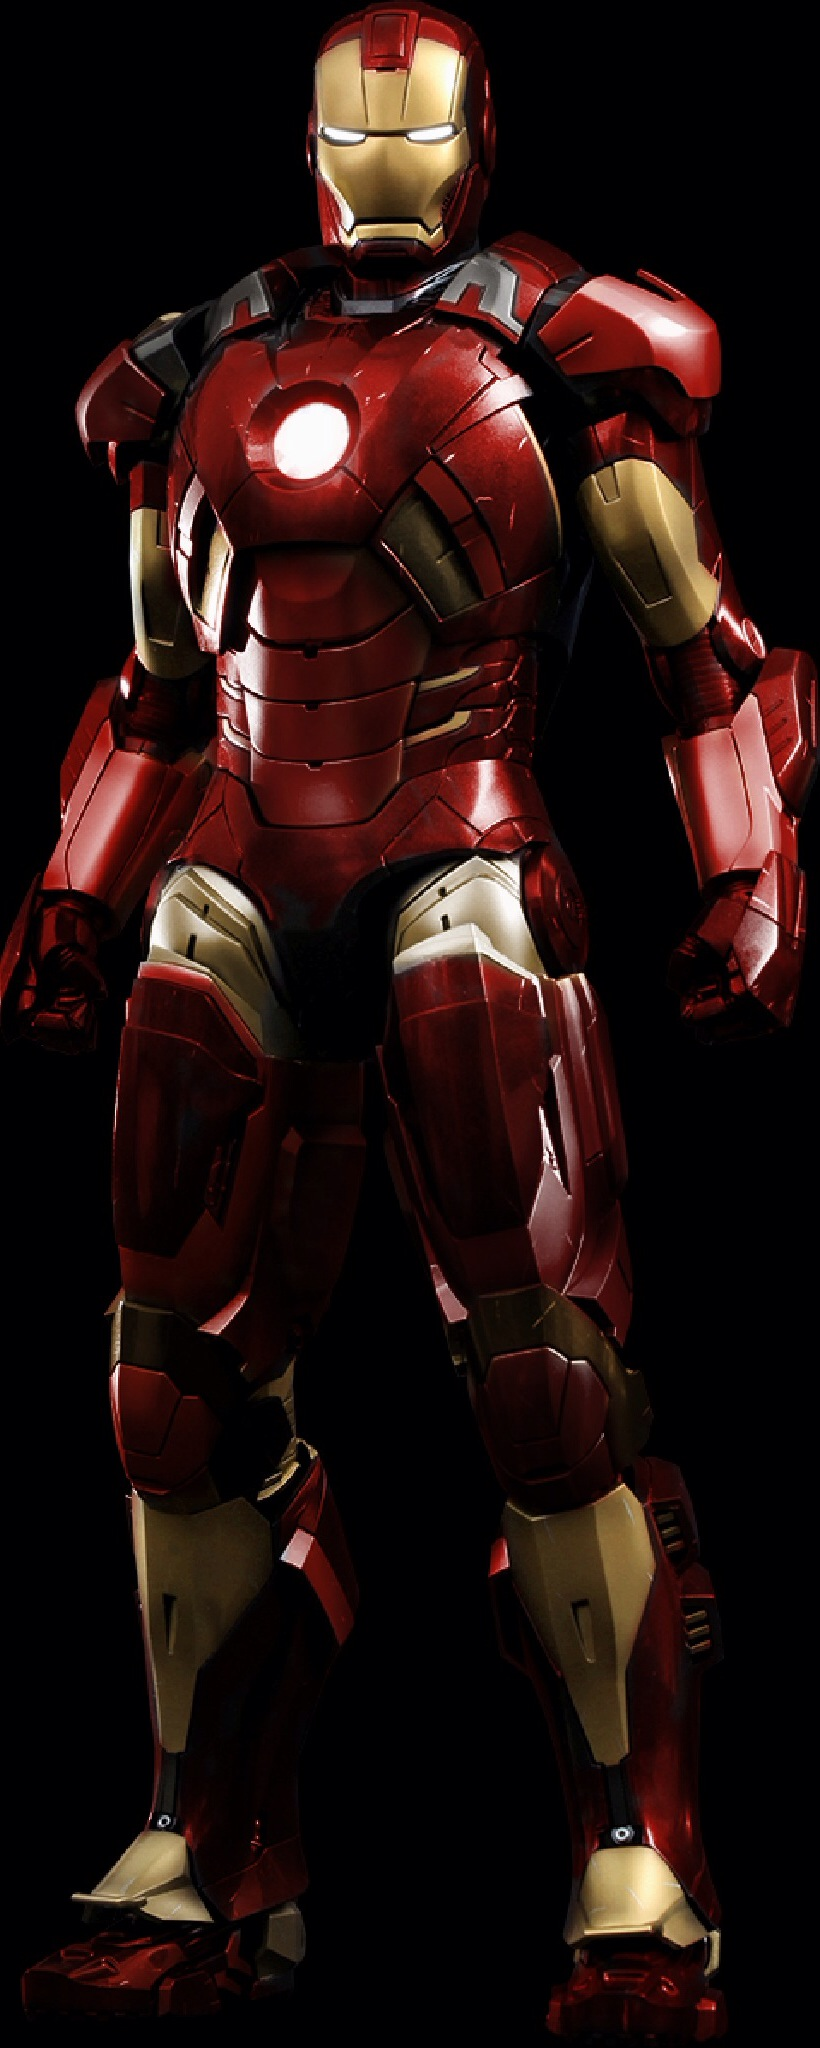 Mark IX | Iron Man Wiki | Fandom powered by Wikia